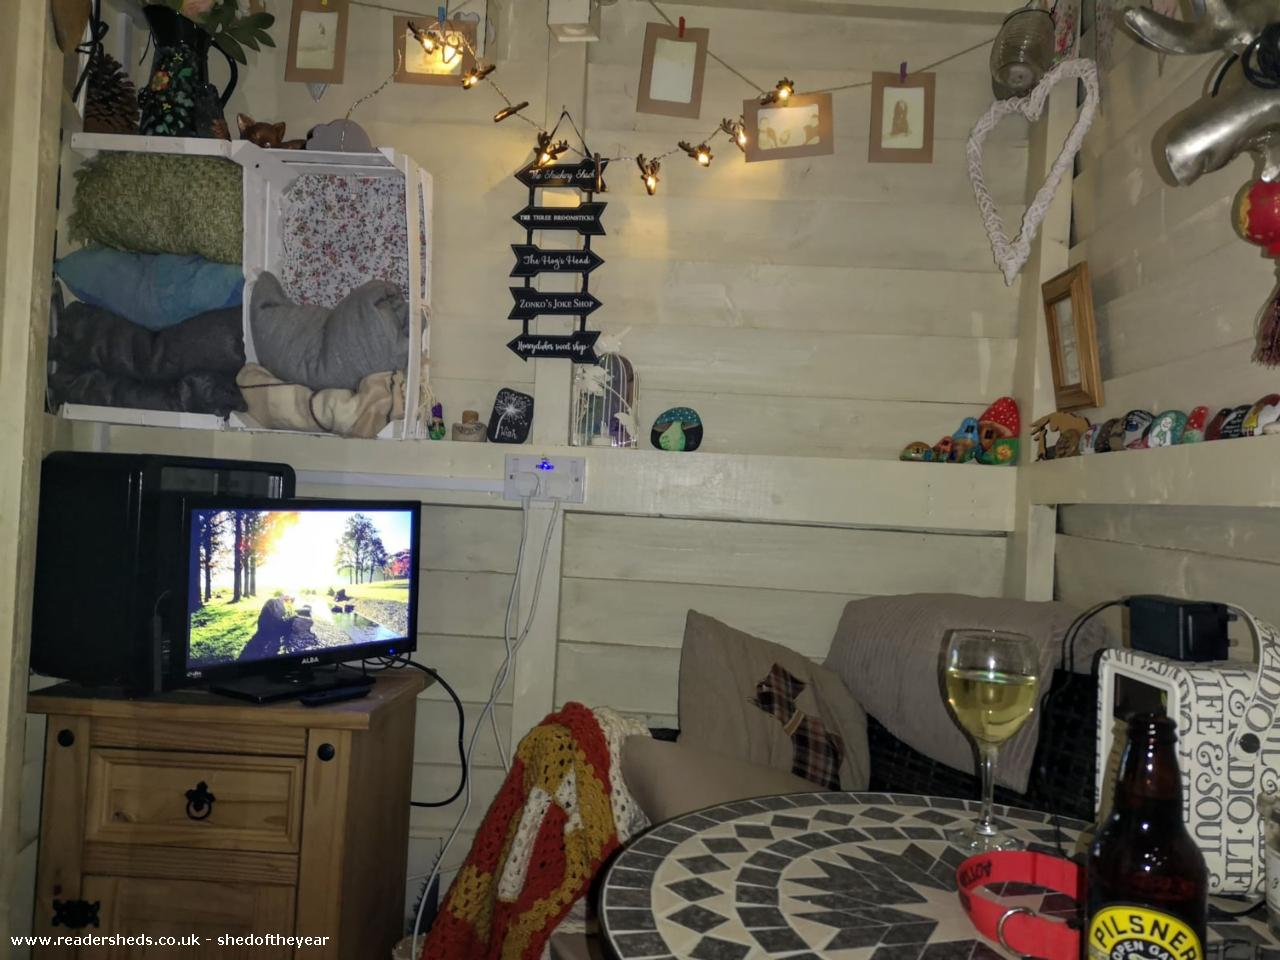 Photo of Roostag, entry to Shed of the year-Inside